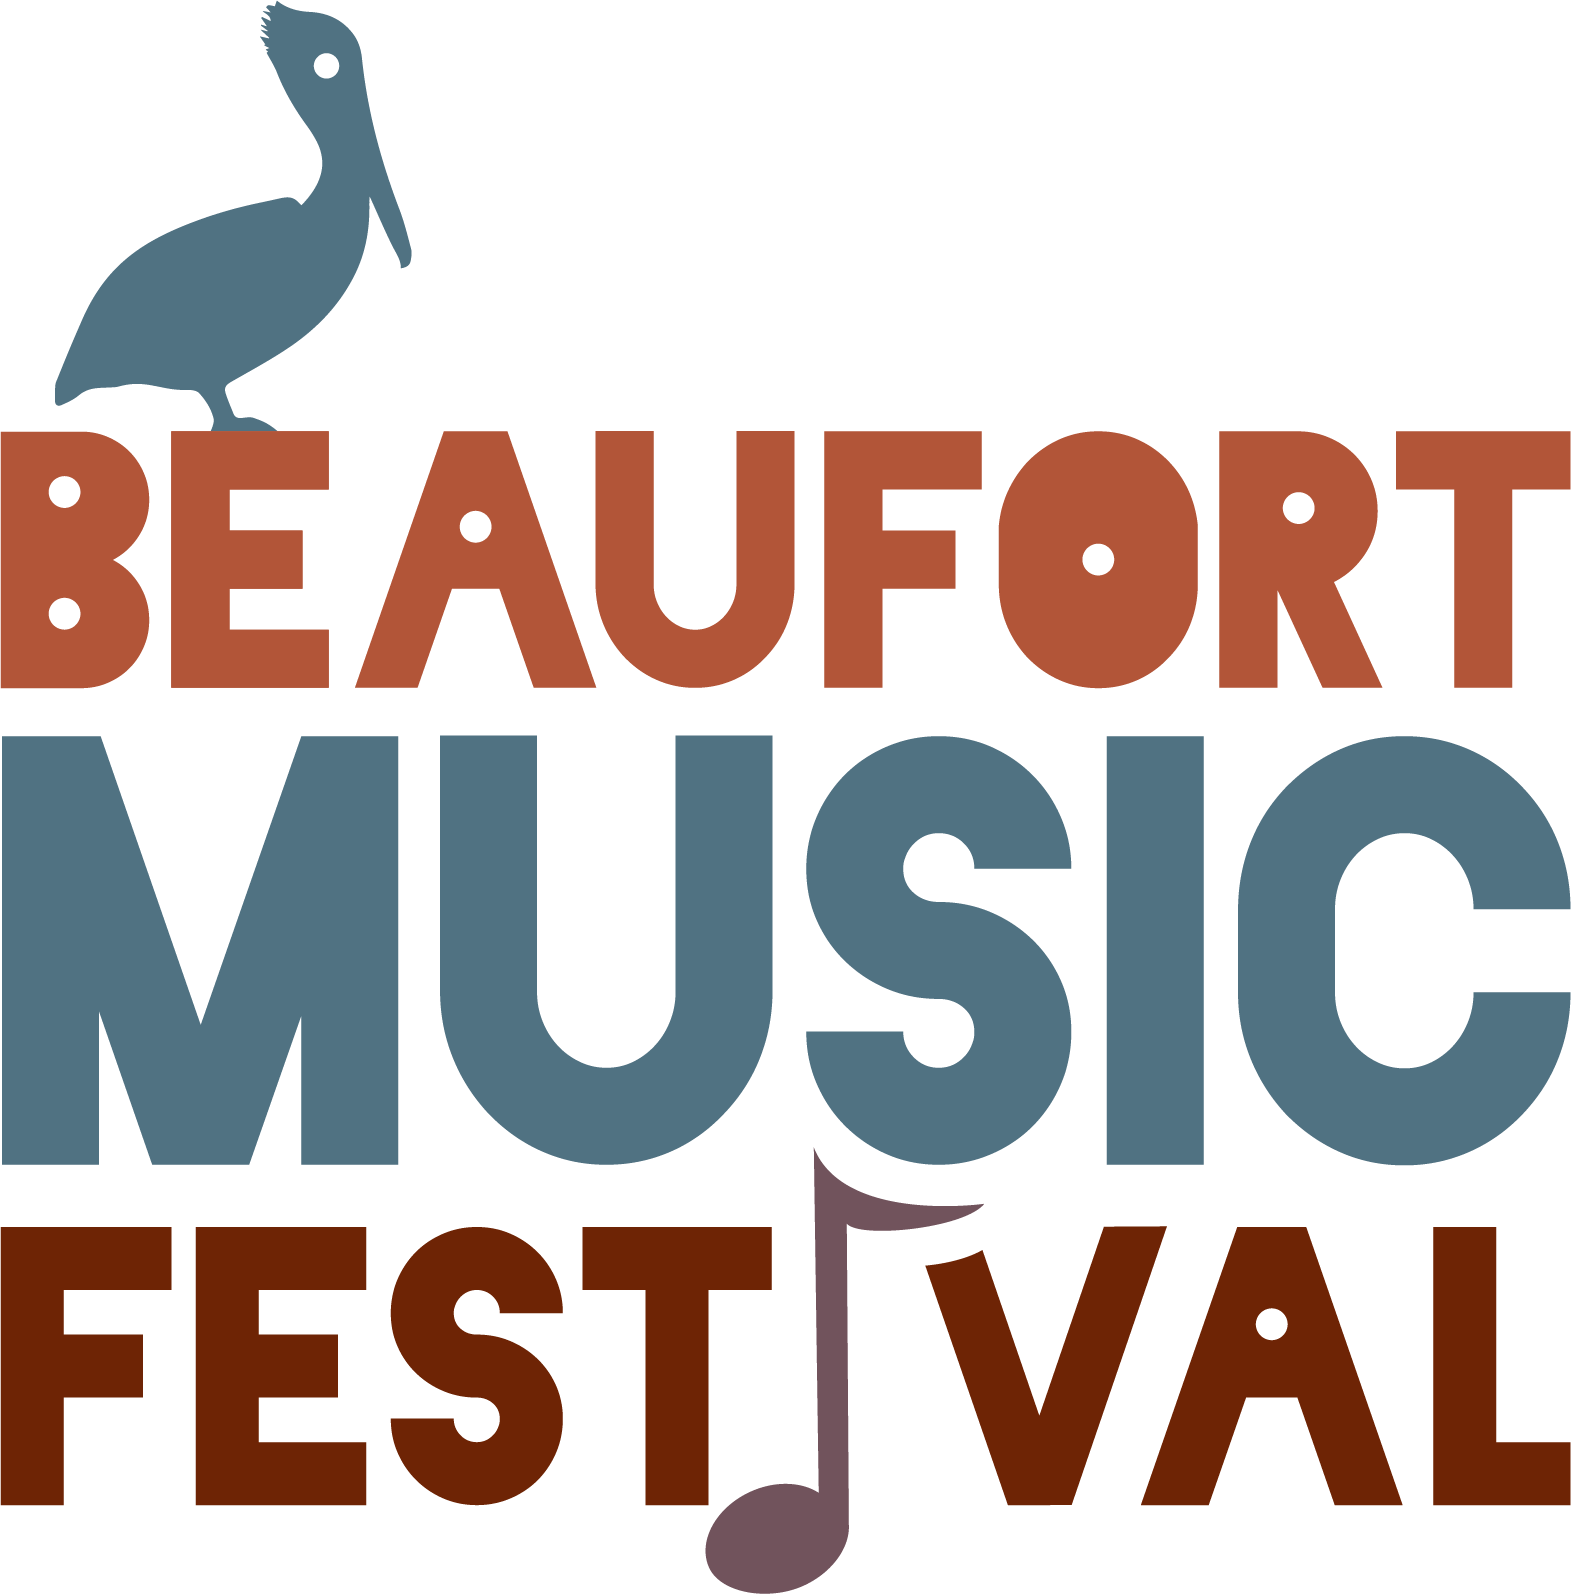 Crystal Coast Music Festival 2020 Beaufort Music Festival :: Beaufort NC, May 17th & 18th, 2019